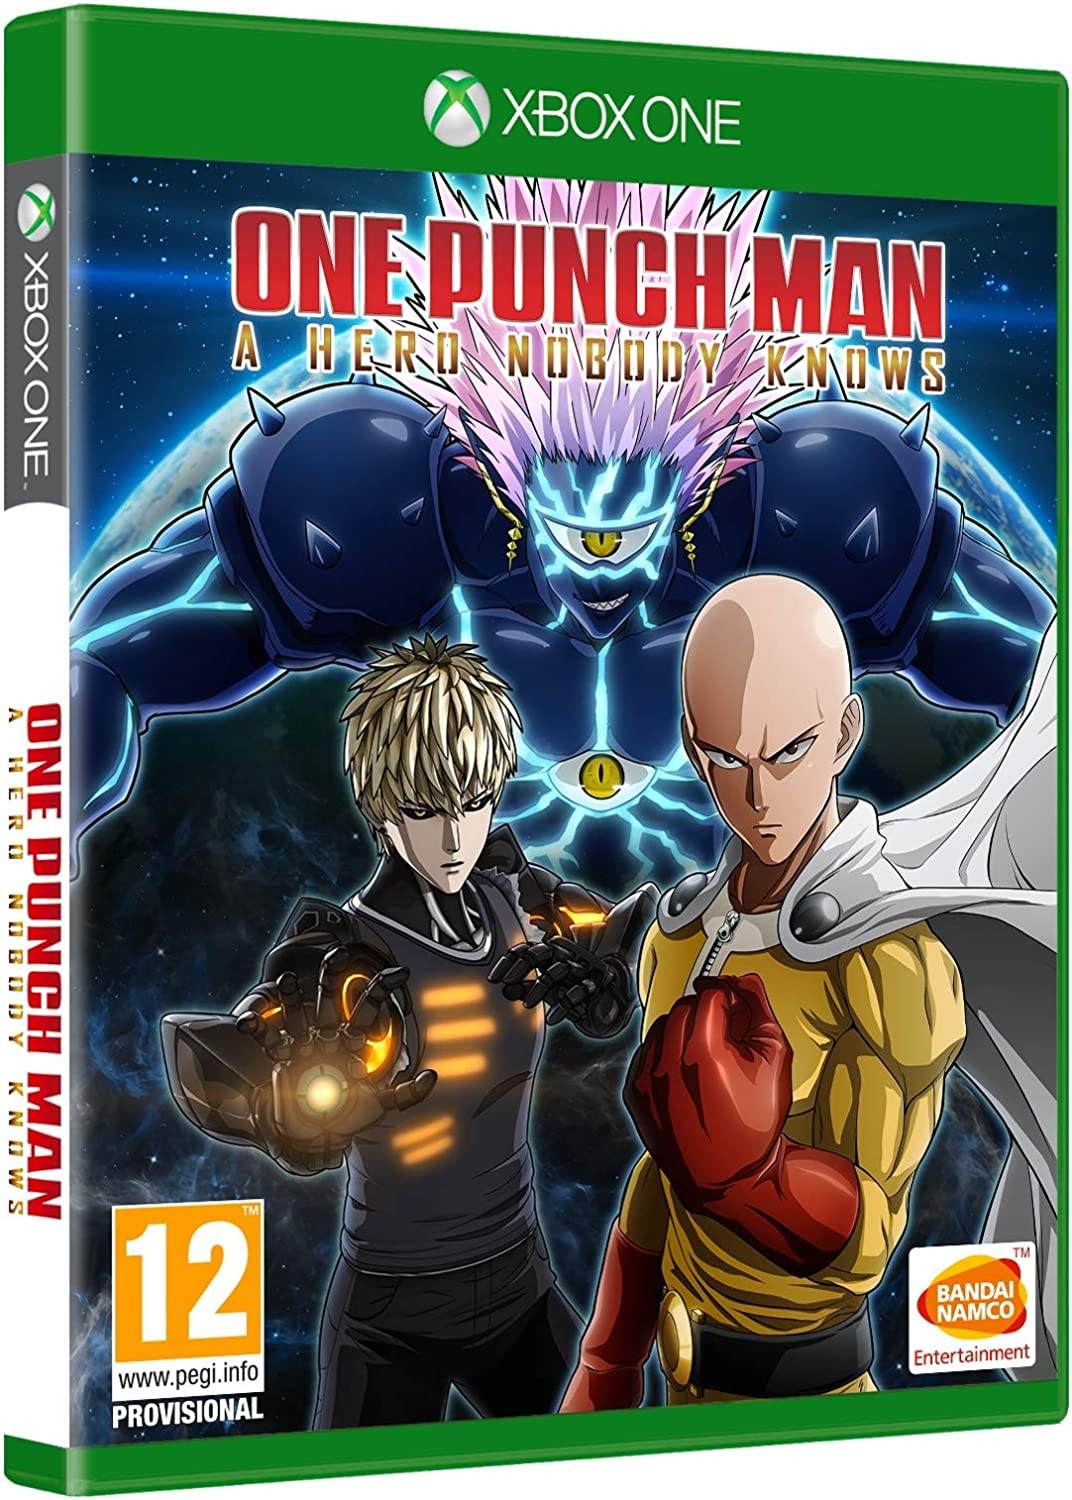 One Punch Man: A Hero Nobody Knows Xboxone - Xbox One [Importación ...